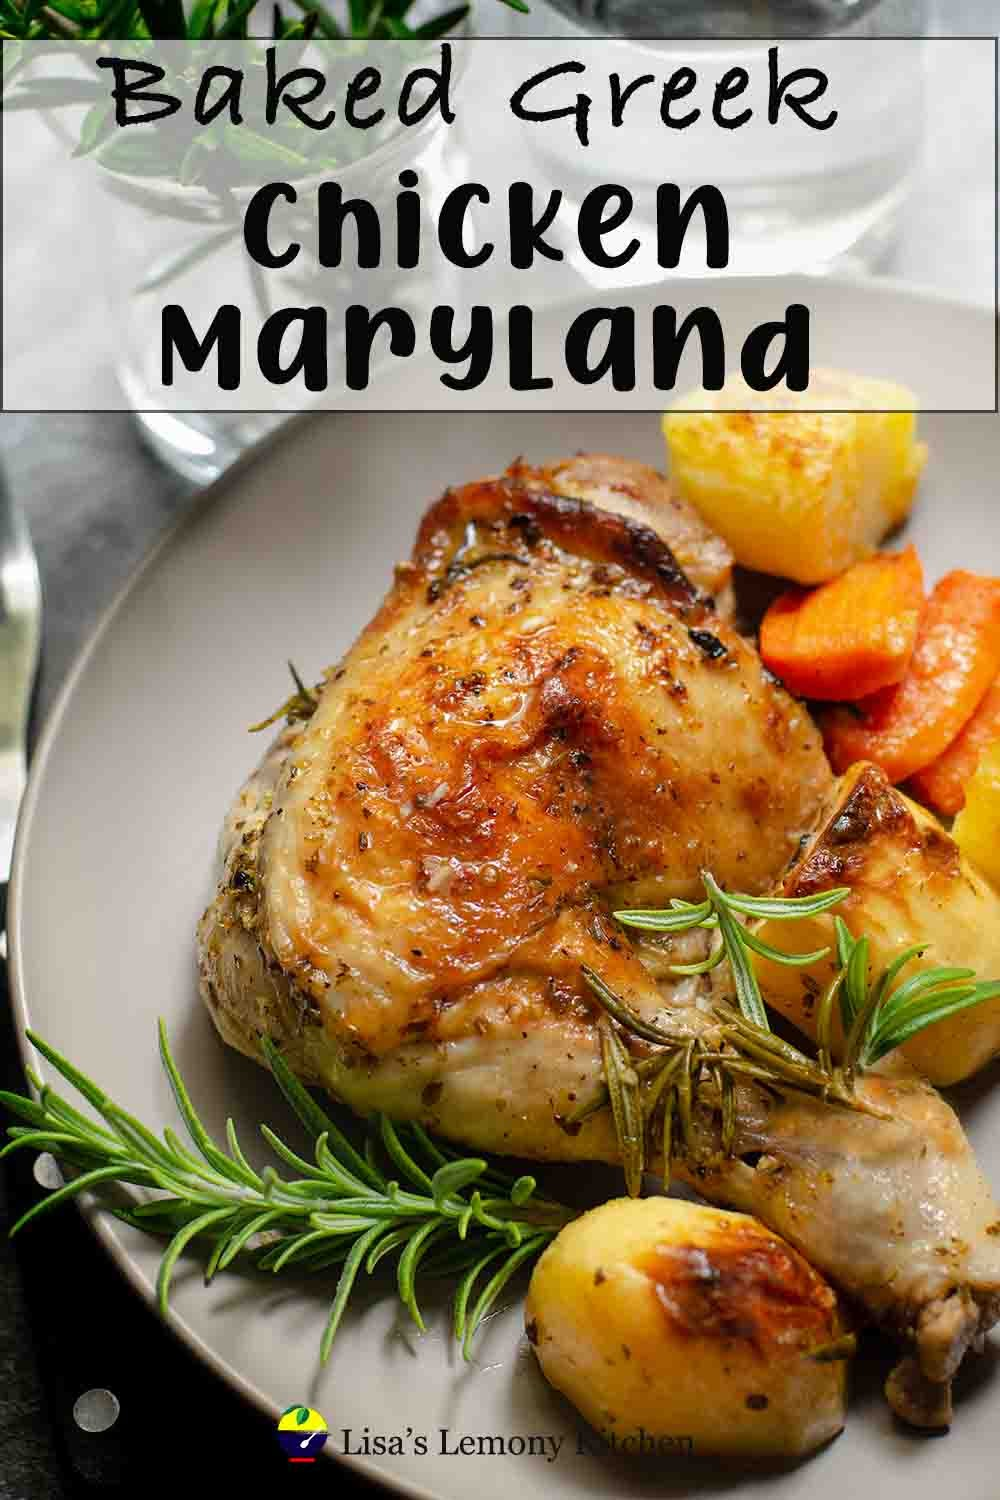 Easy Greek style lemon baked chicken with potatoes and herbs, all in one pot.